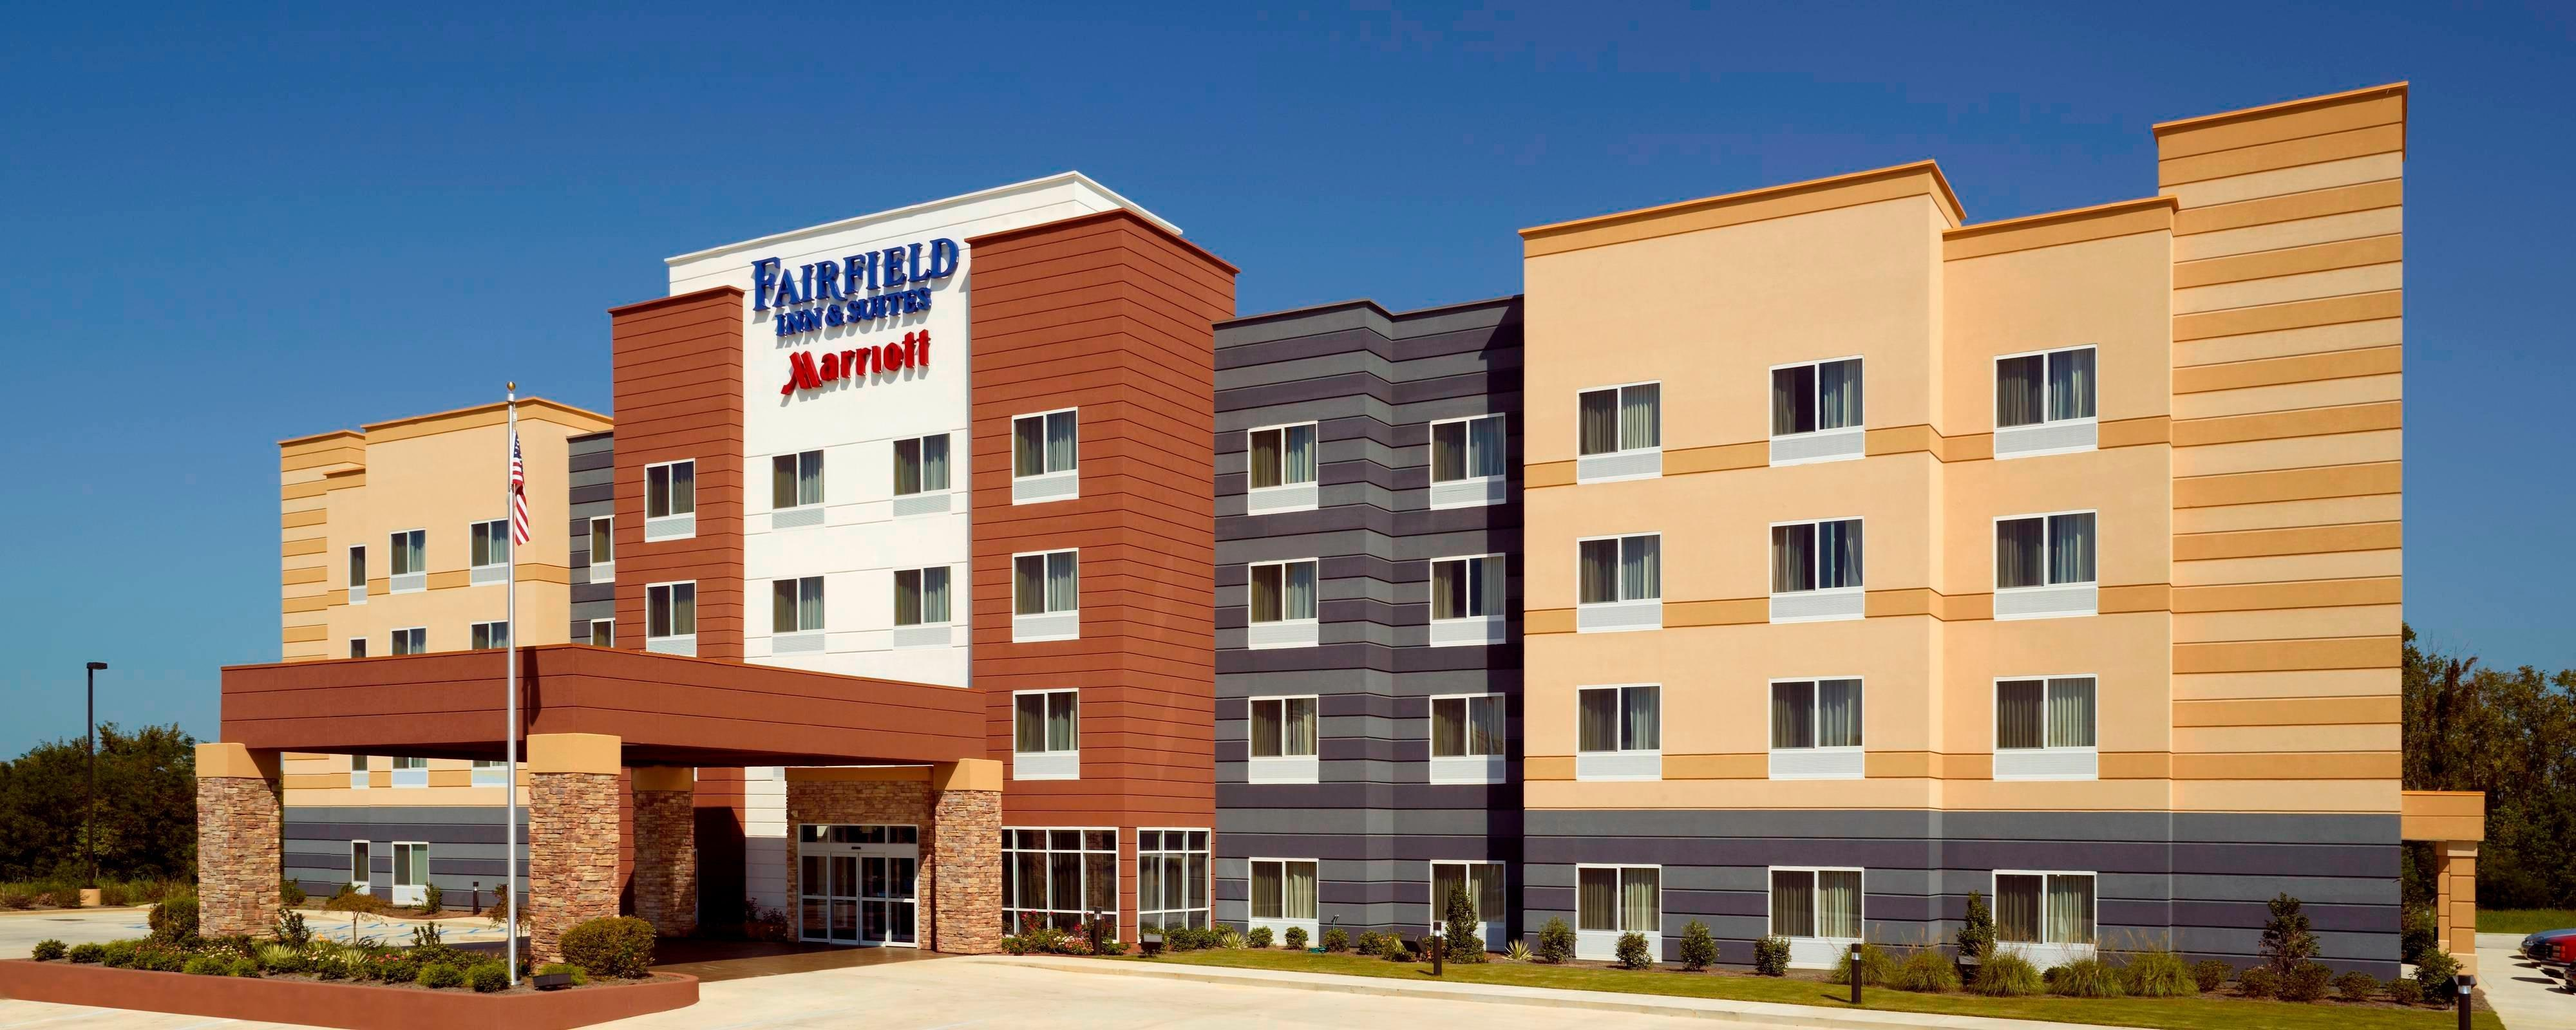 Fairfield Inn & Suites by Marriott Montgomery South